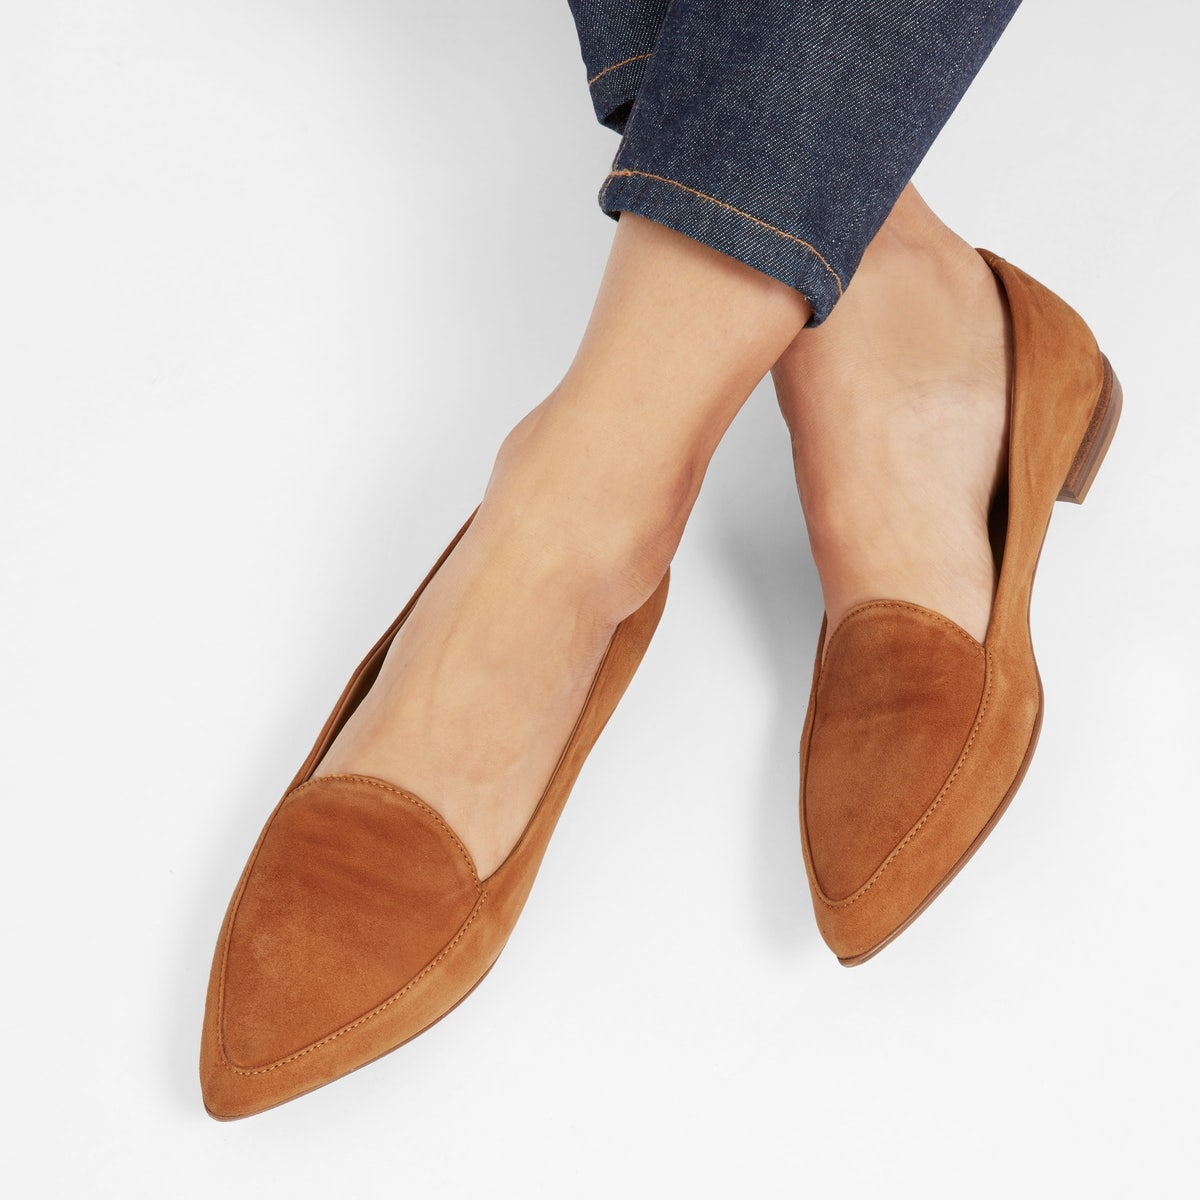 Everlane Modern Point Flat Review